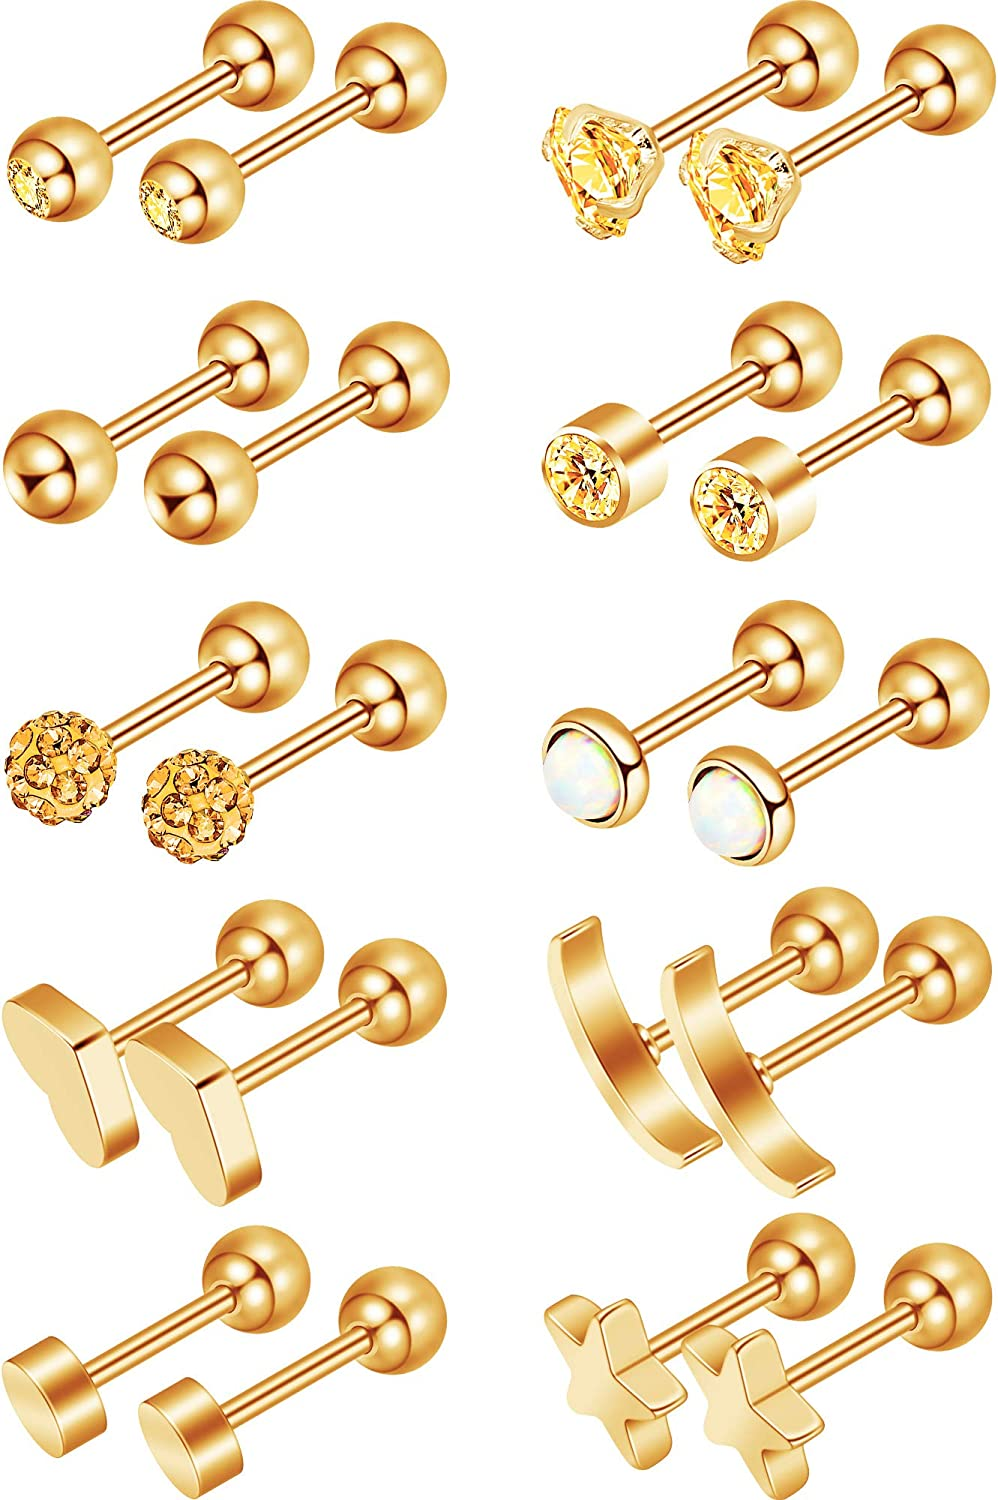 Jovitec Round Ball Stud Stainless Steel Barbell Earring Set Cartilage Helix Earring Piercings for Tragus Cartilage Ear